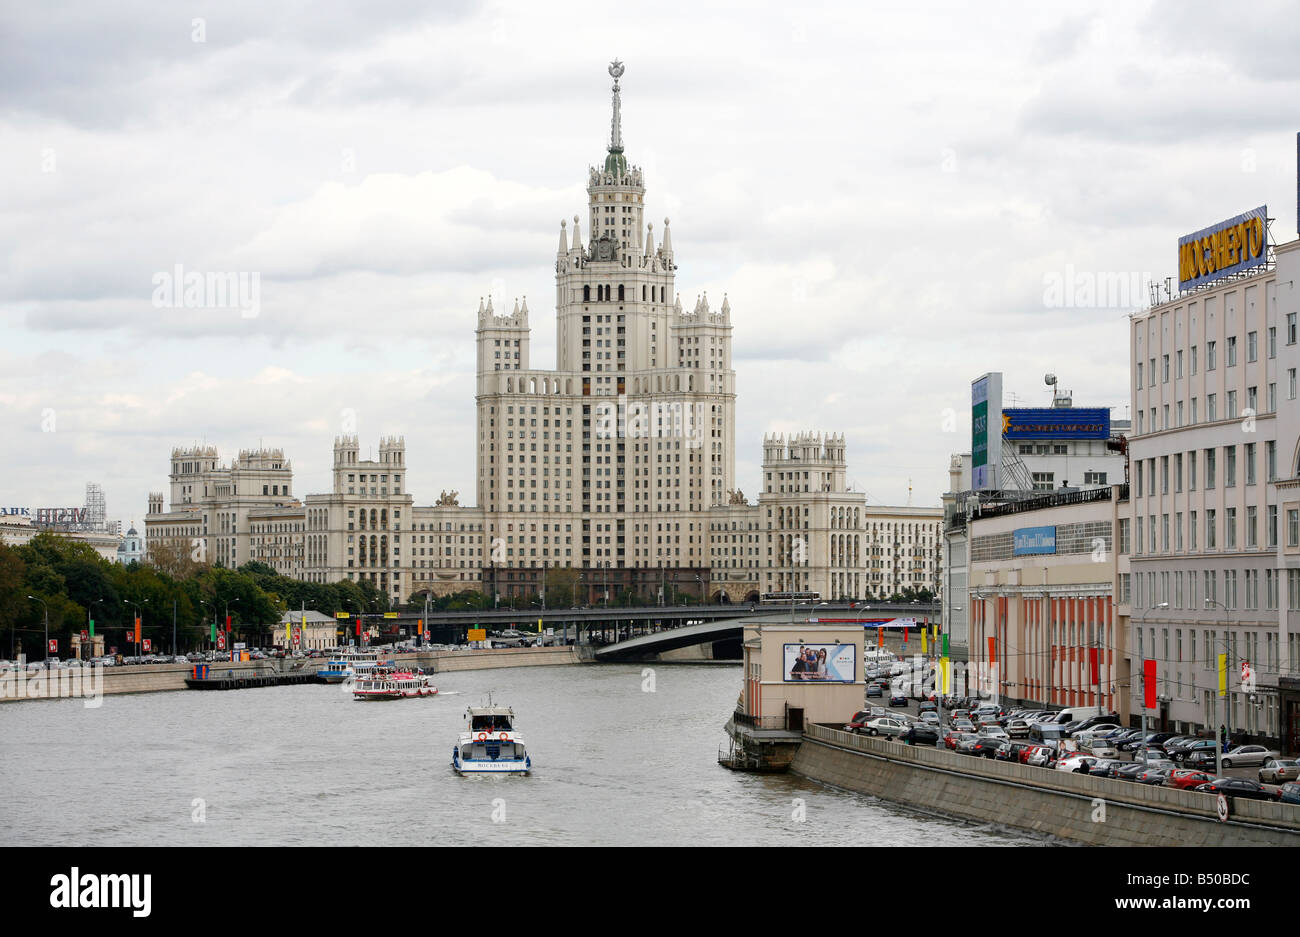 Stalin era building at Kotelnicheskaya embankment one of the Seven Sisters which are seven Stalinist skyscrapers Moscow Russia Stock Photo